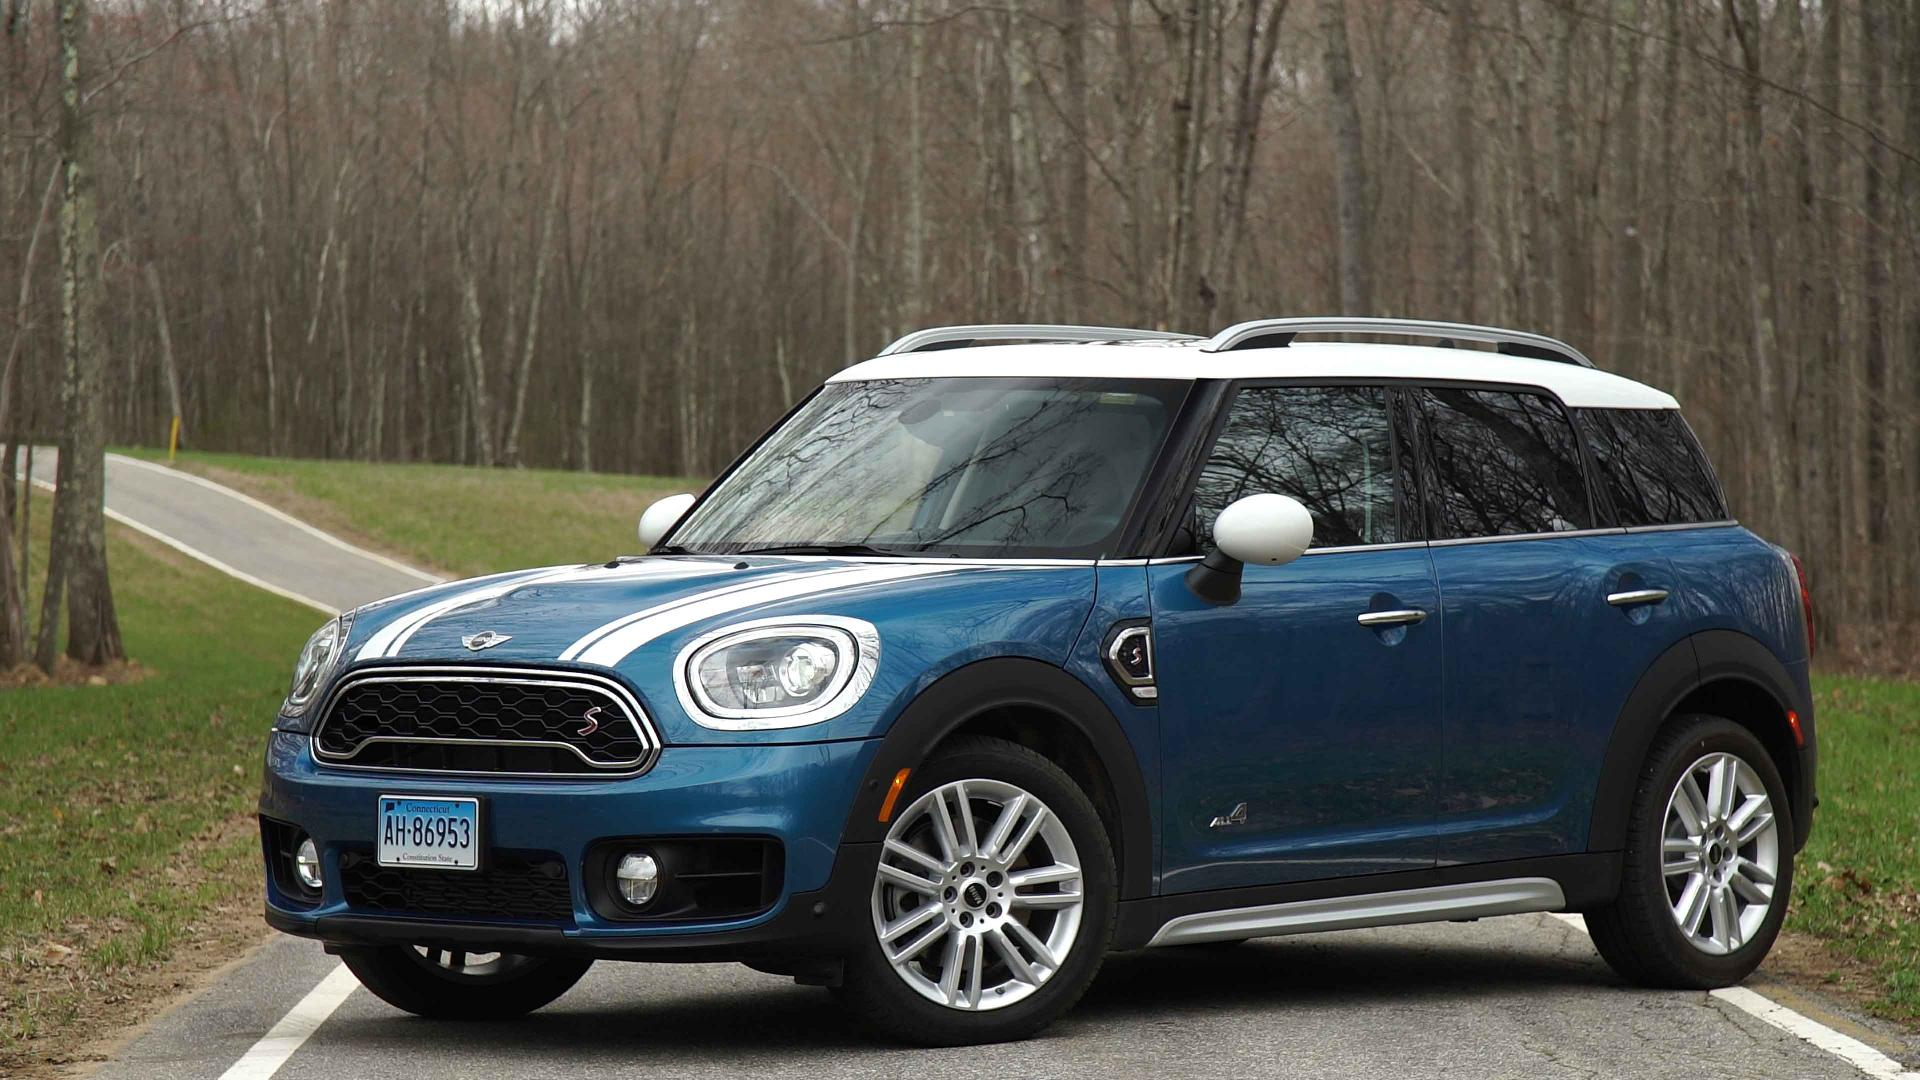 2017 mini cooper countryman review - consumer reports